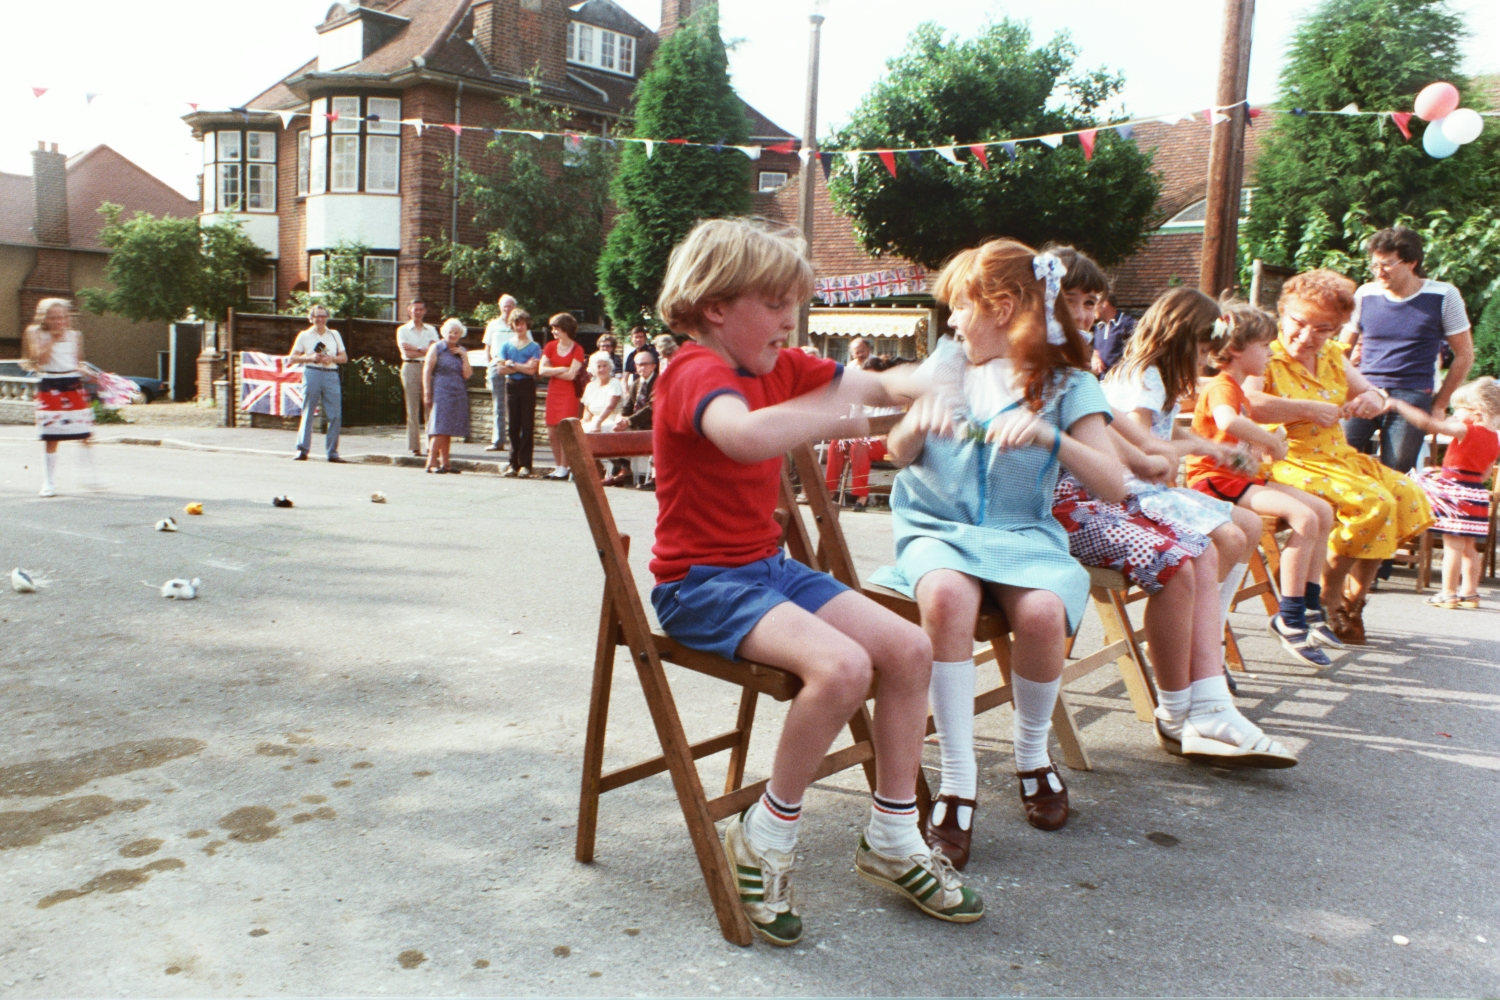 Matt Shearer at the 1981 Woodside Road Street Party for Charles & Dianna's Royal Wedding